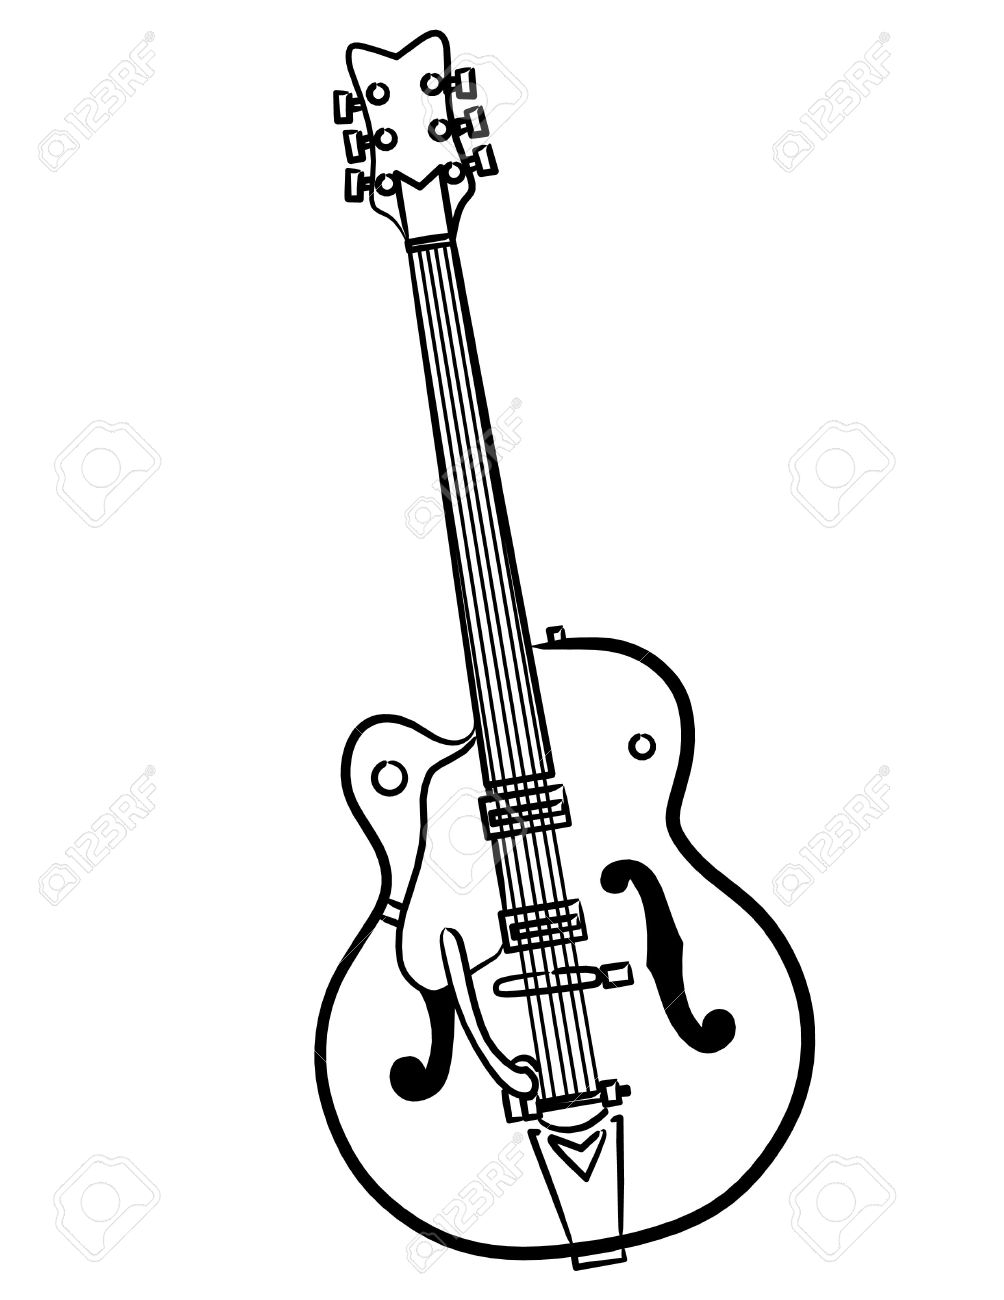 Electric guitar outline free download best electric guitar